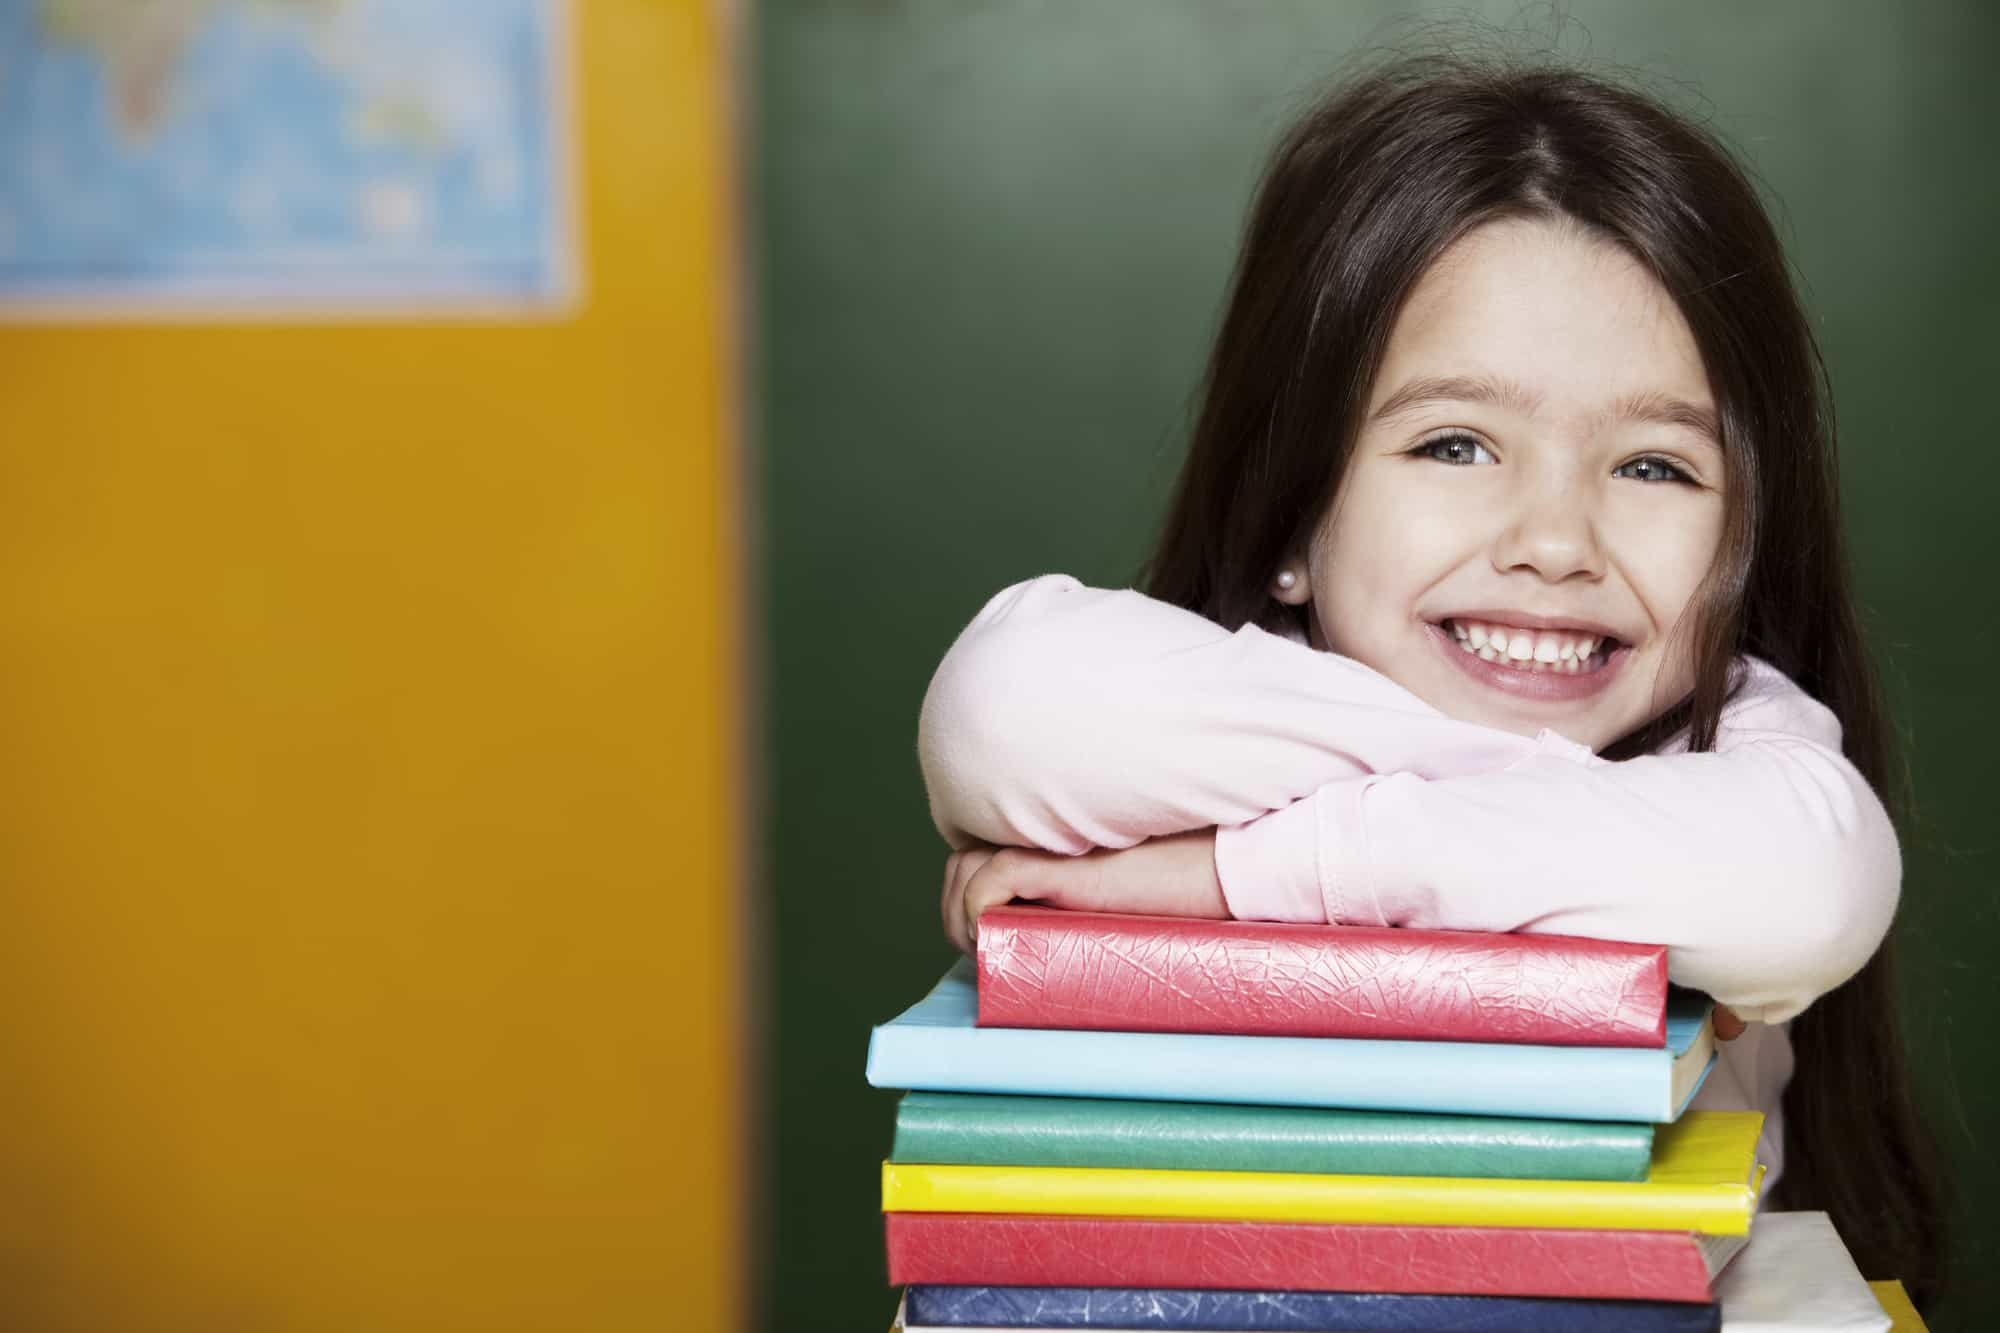 young burnette girl resting on a pile of colorful books smiling